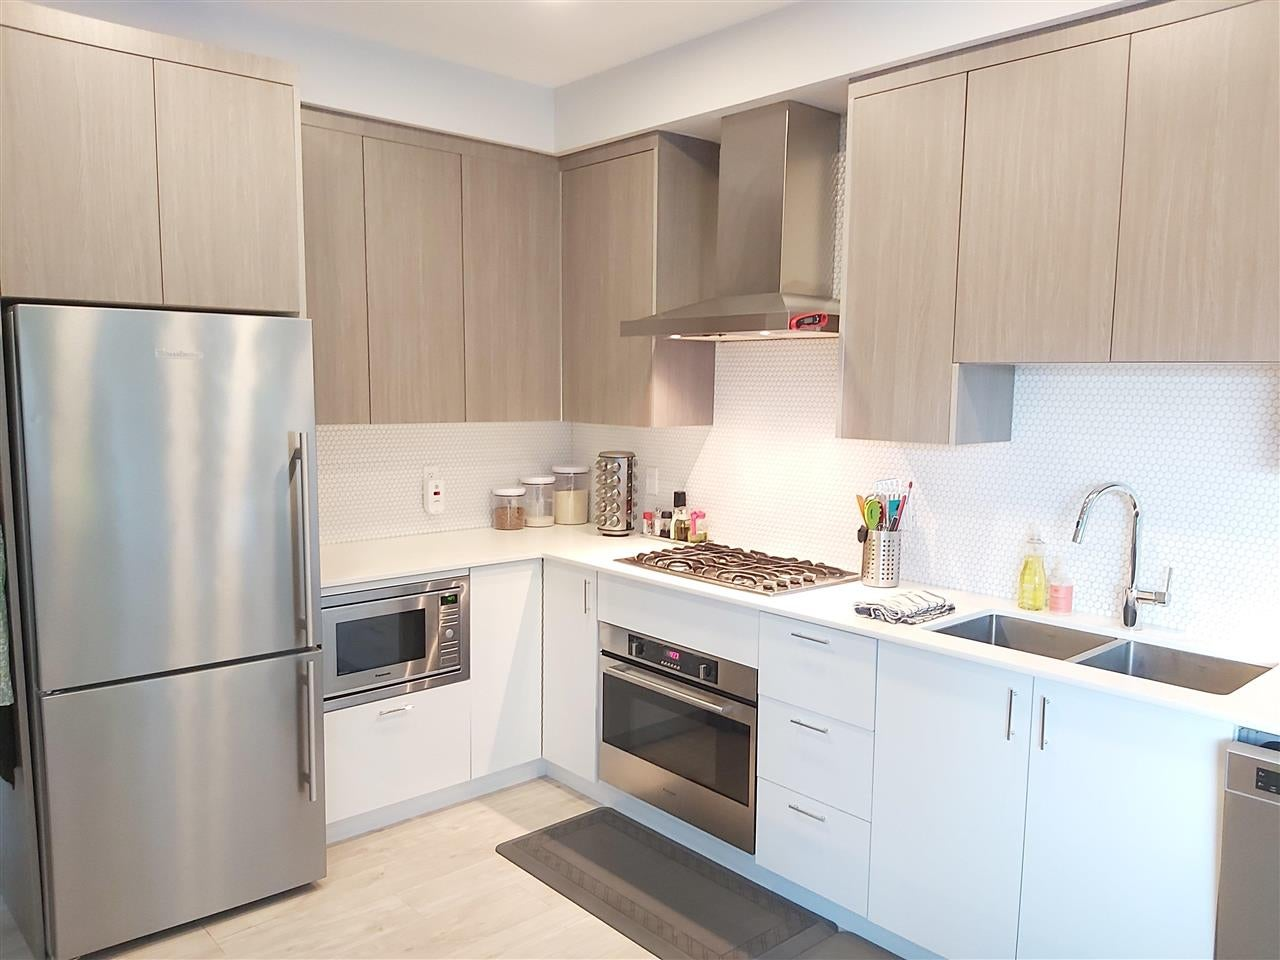 219 6283 KINGSWAY - Highgate Apartment/Condo for sale, 2 Bedrooms (R2576169) - #6